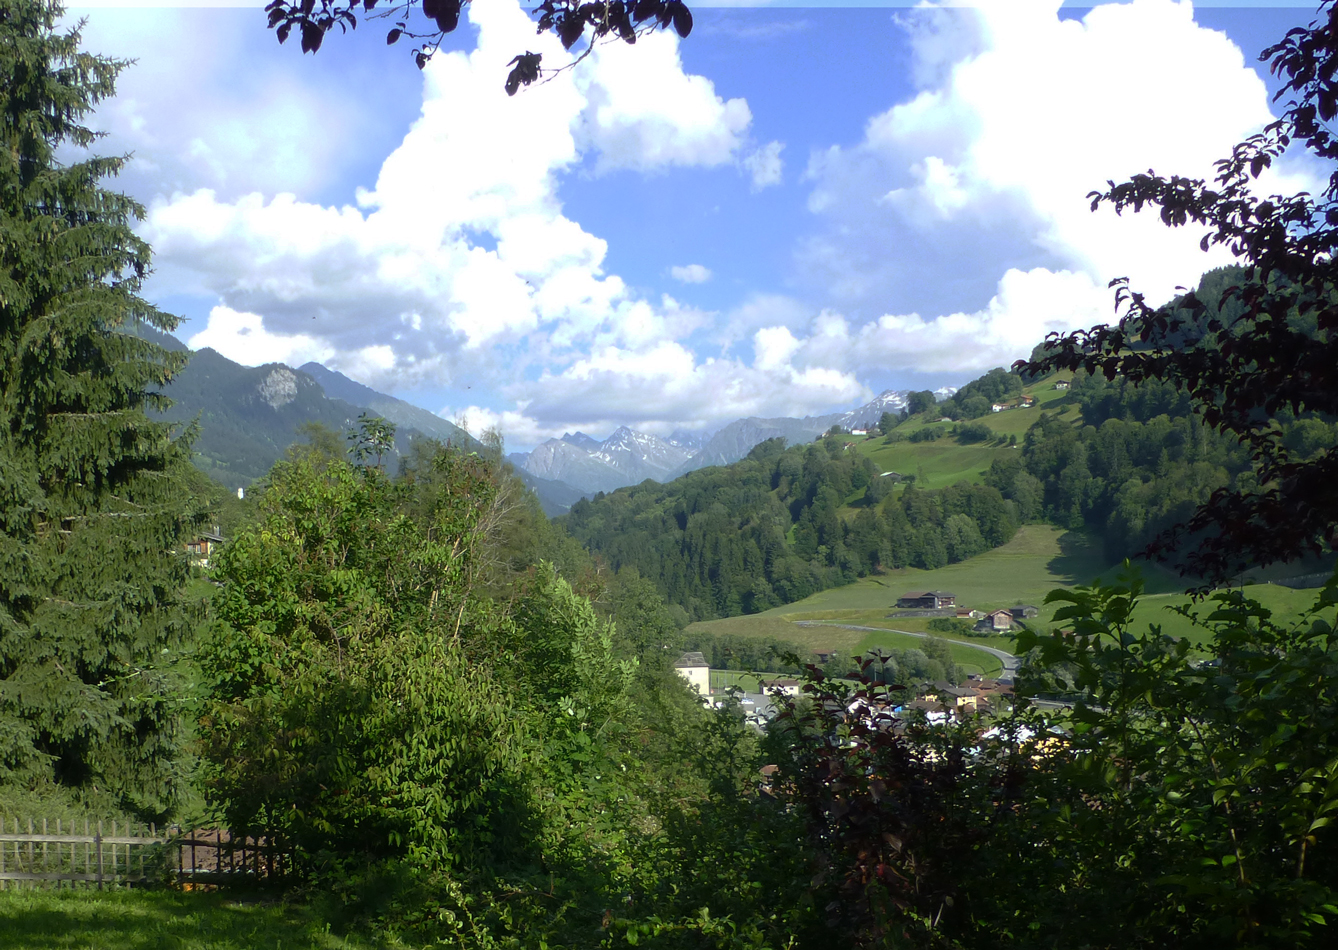 Back at Küblis - A view from the house we were renting.